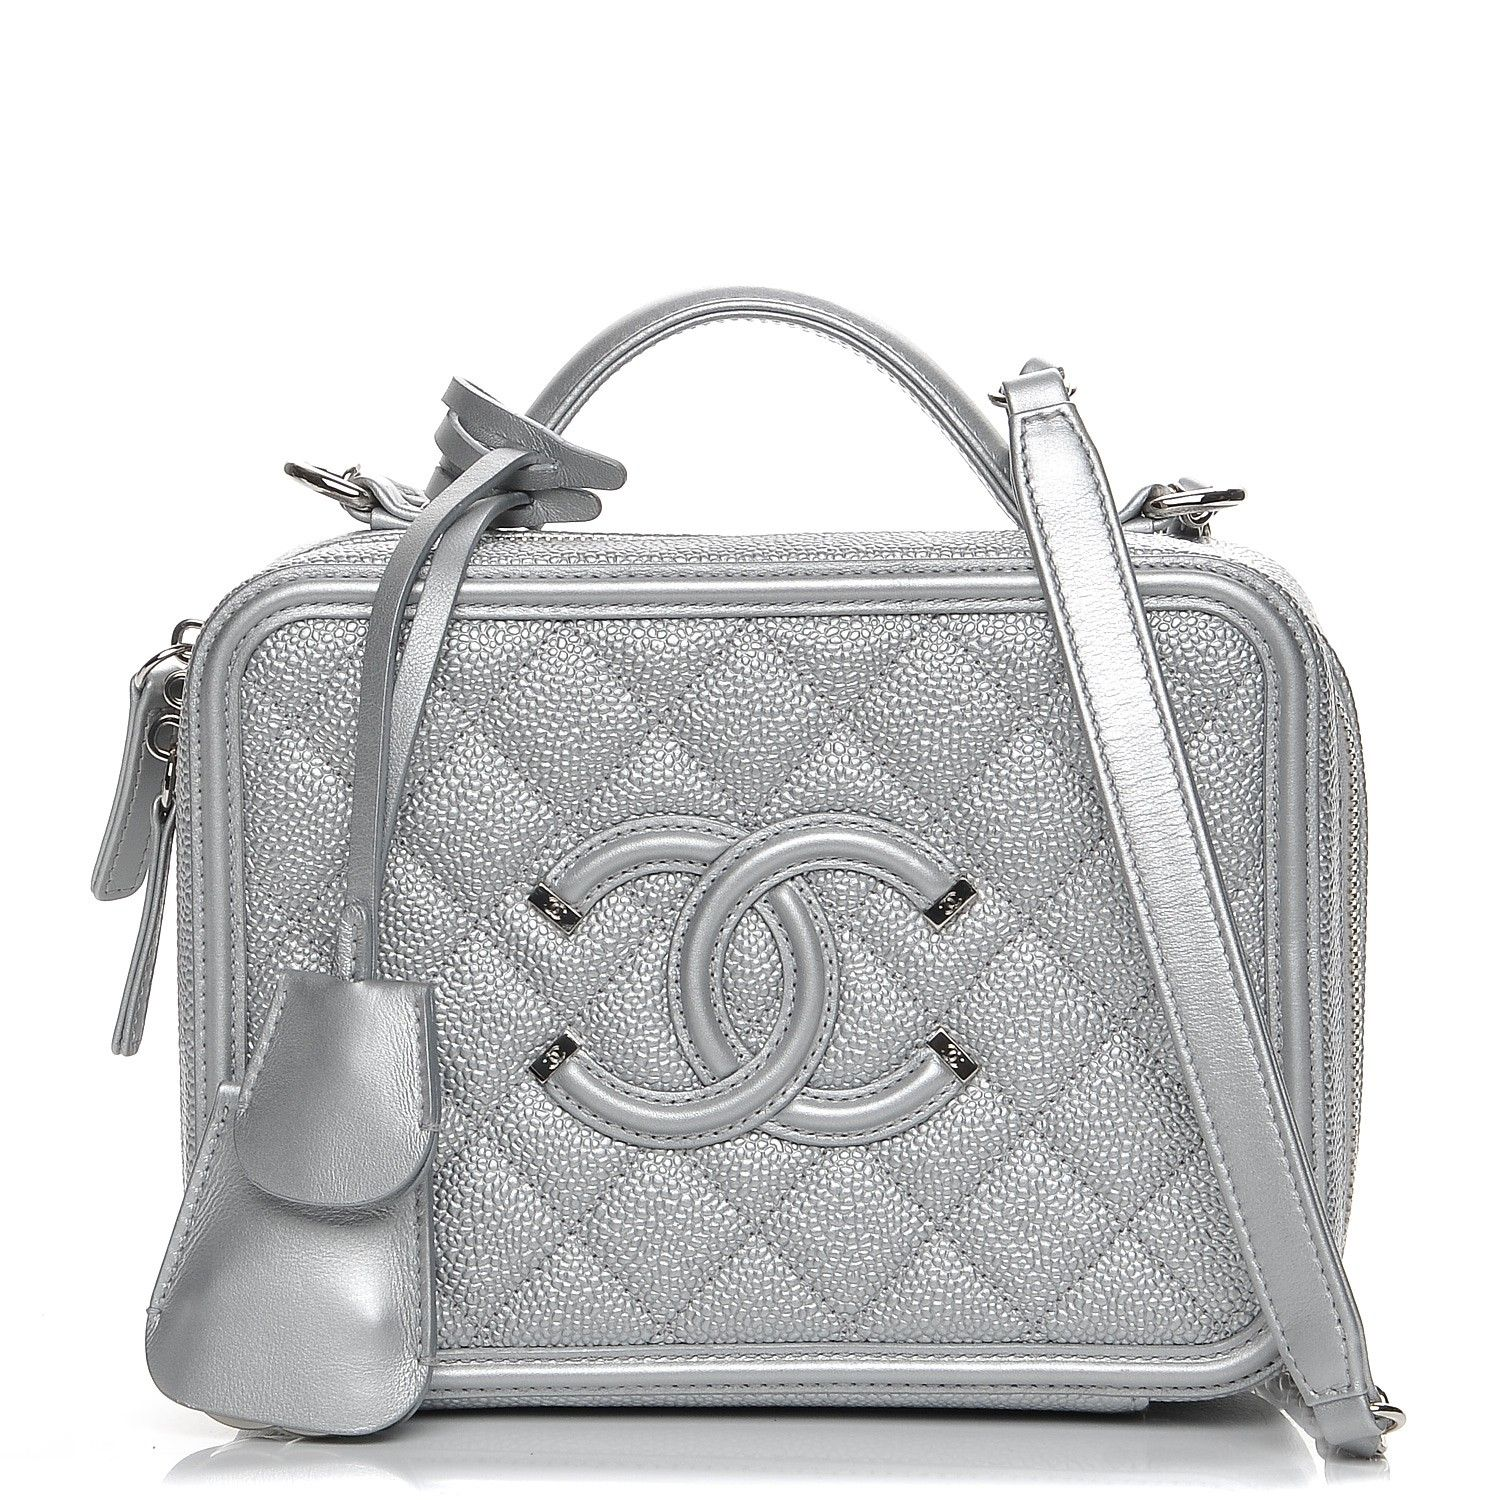 0f0cdac3537d This is an authentic CHANEL Metallic Caviar Quilted Medium CC Filigree  Vanity Case in Silver.